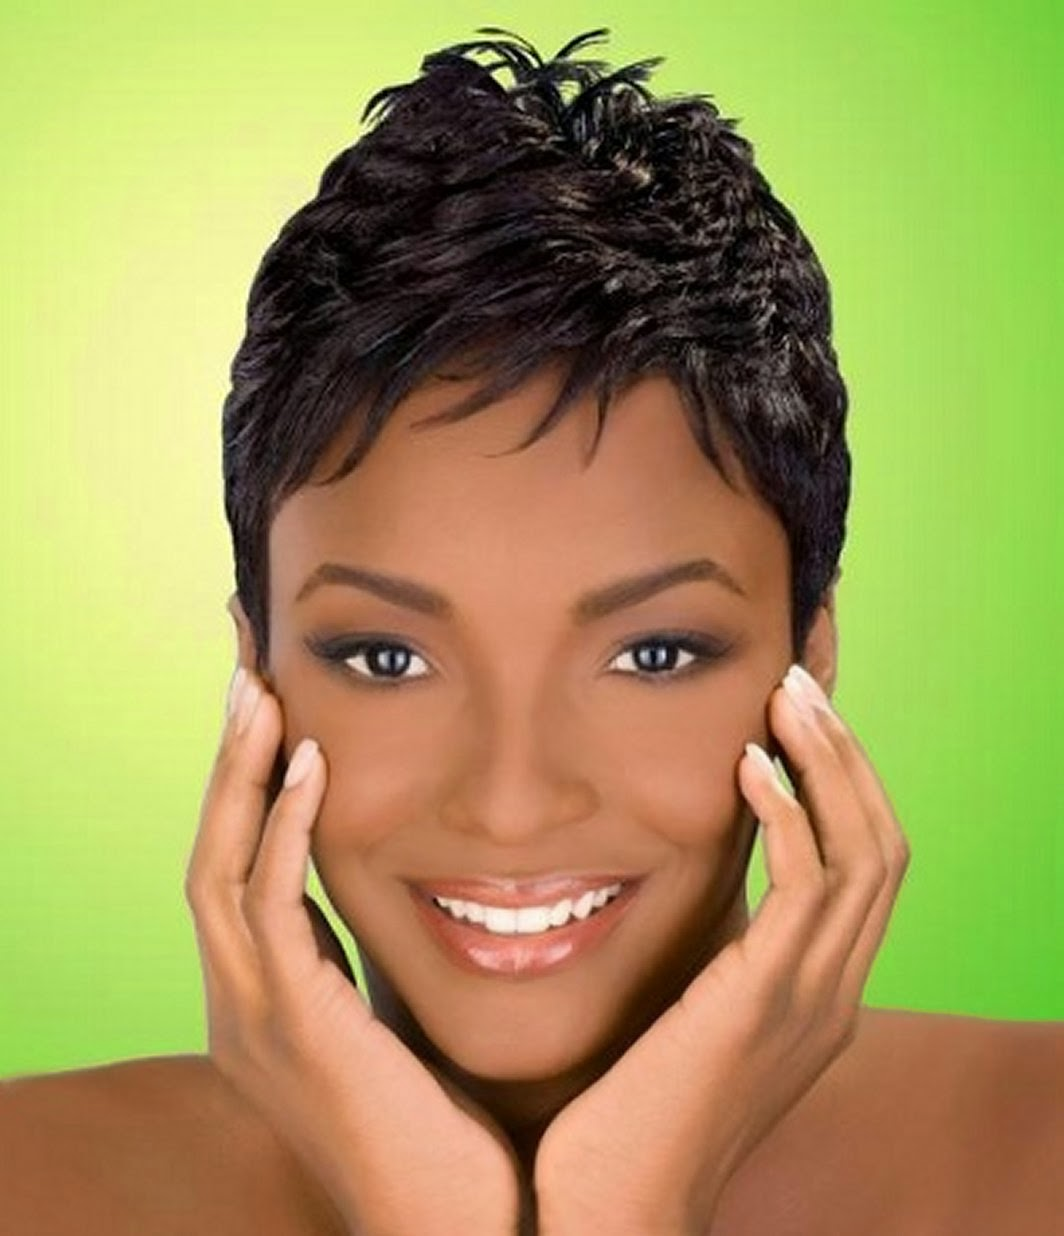 Peachy Good Short Hairstyles For African American Women Hairstyles For Men Maxibearus